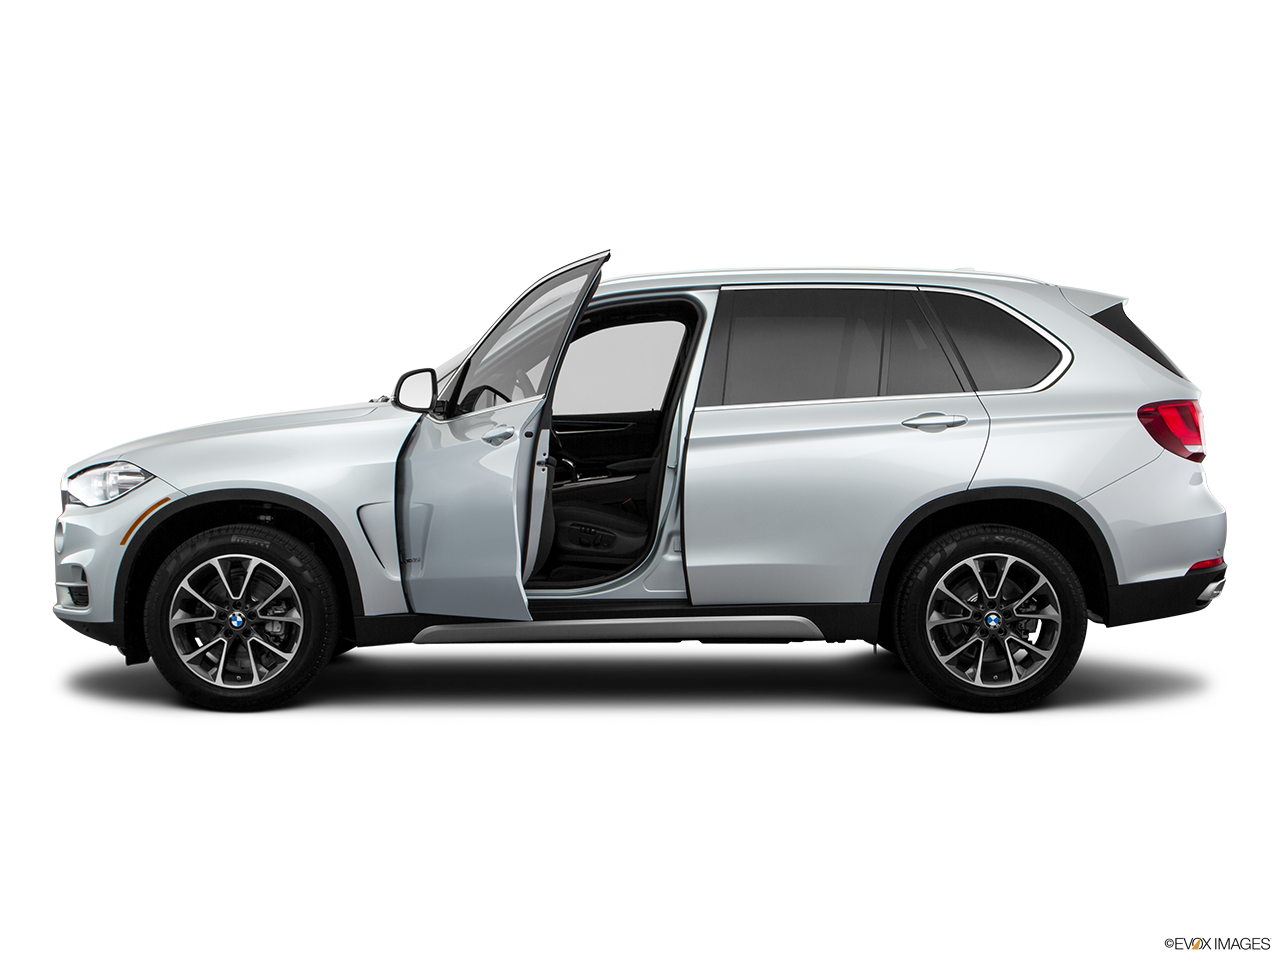 Side view of the BMW X5